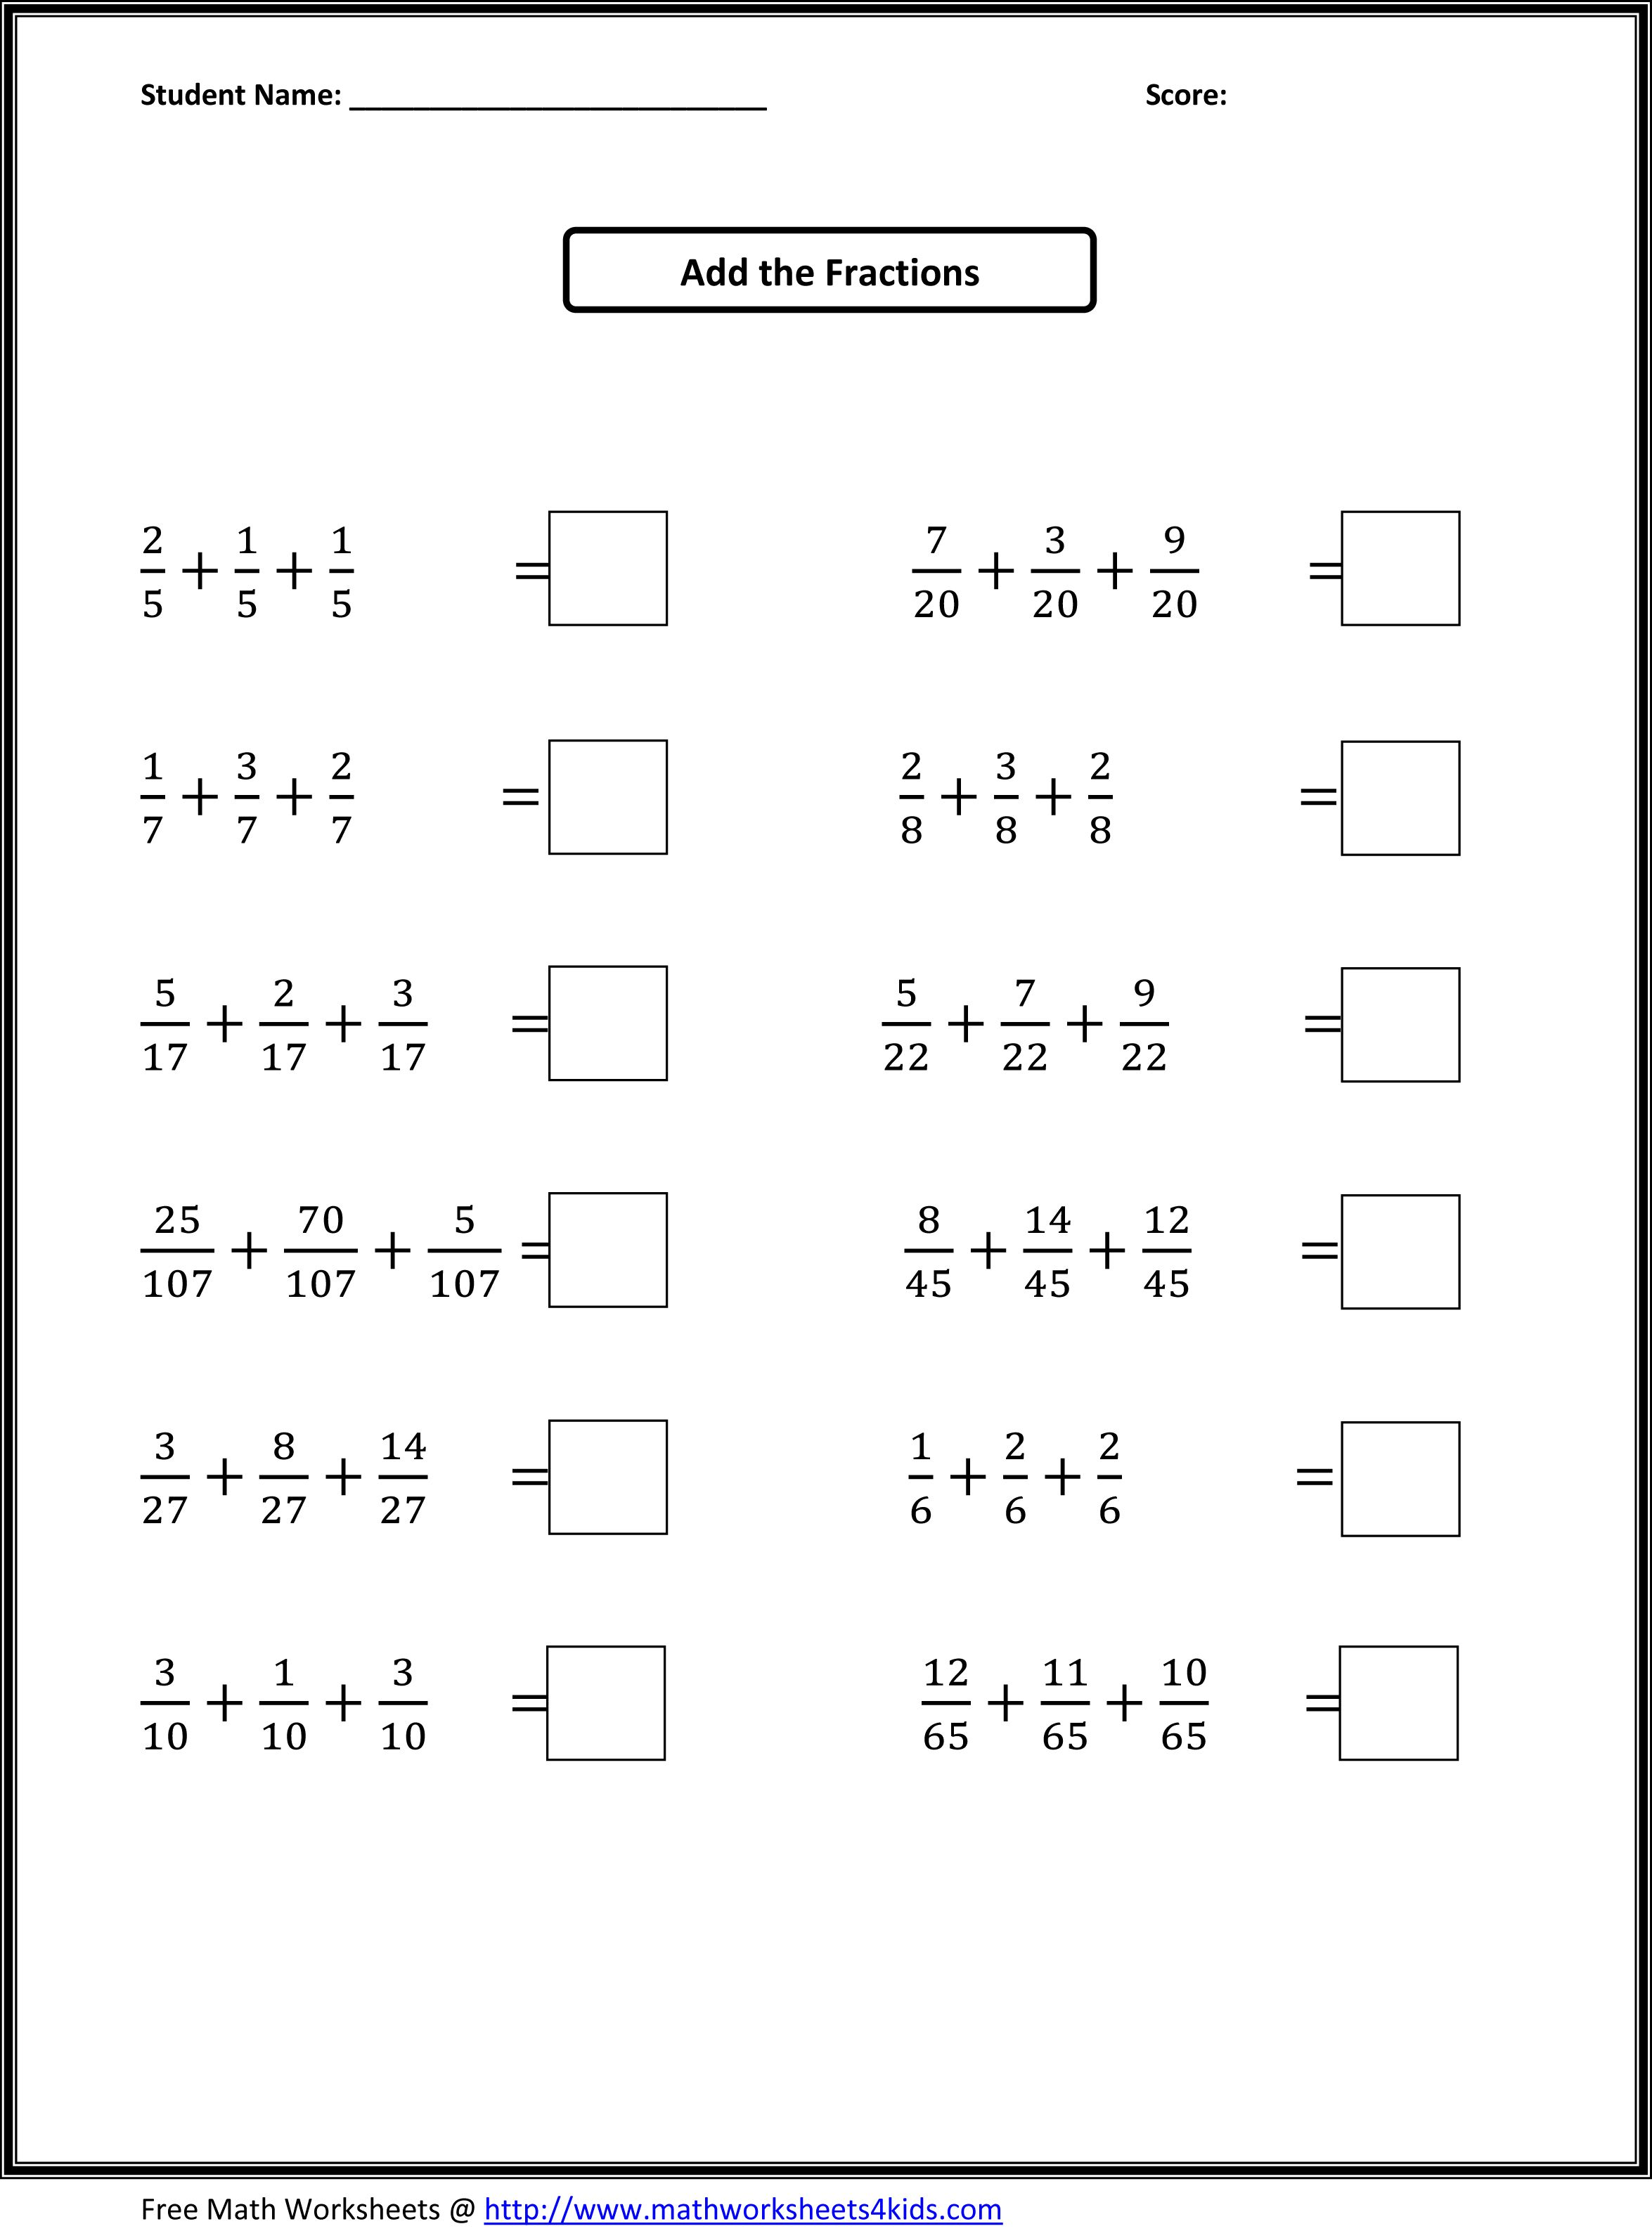 math worksheet : fractions easy work and math worksheets on pinterest : Math Worksheets For Year 6